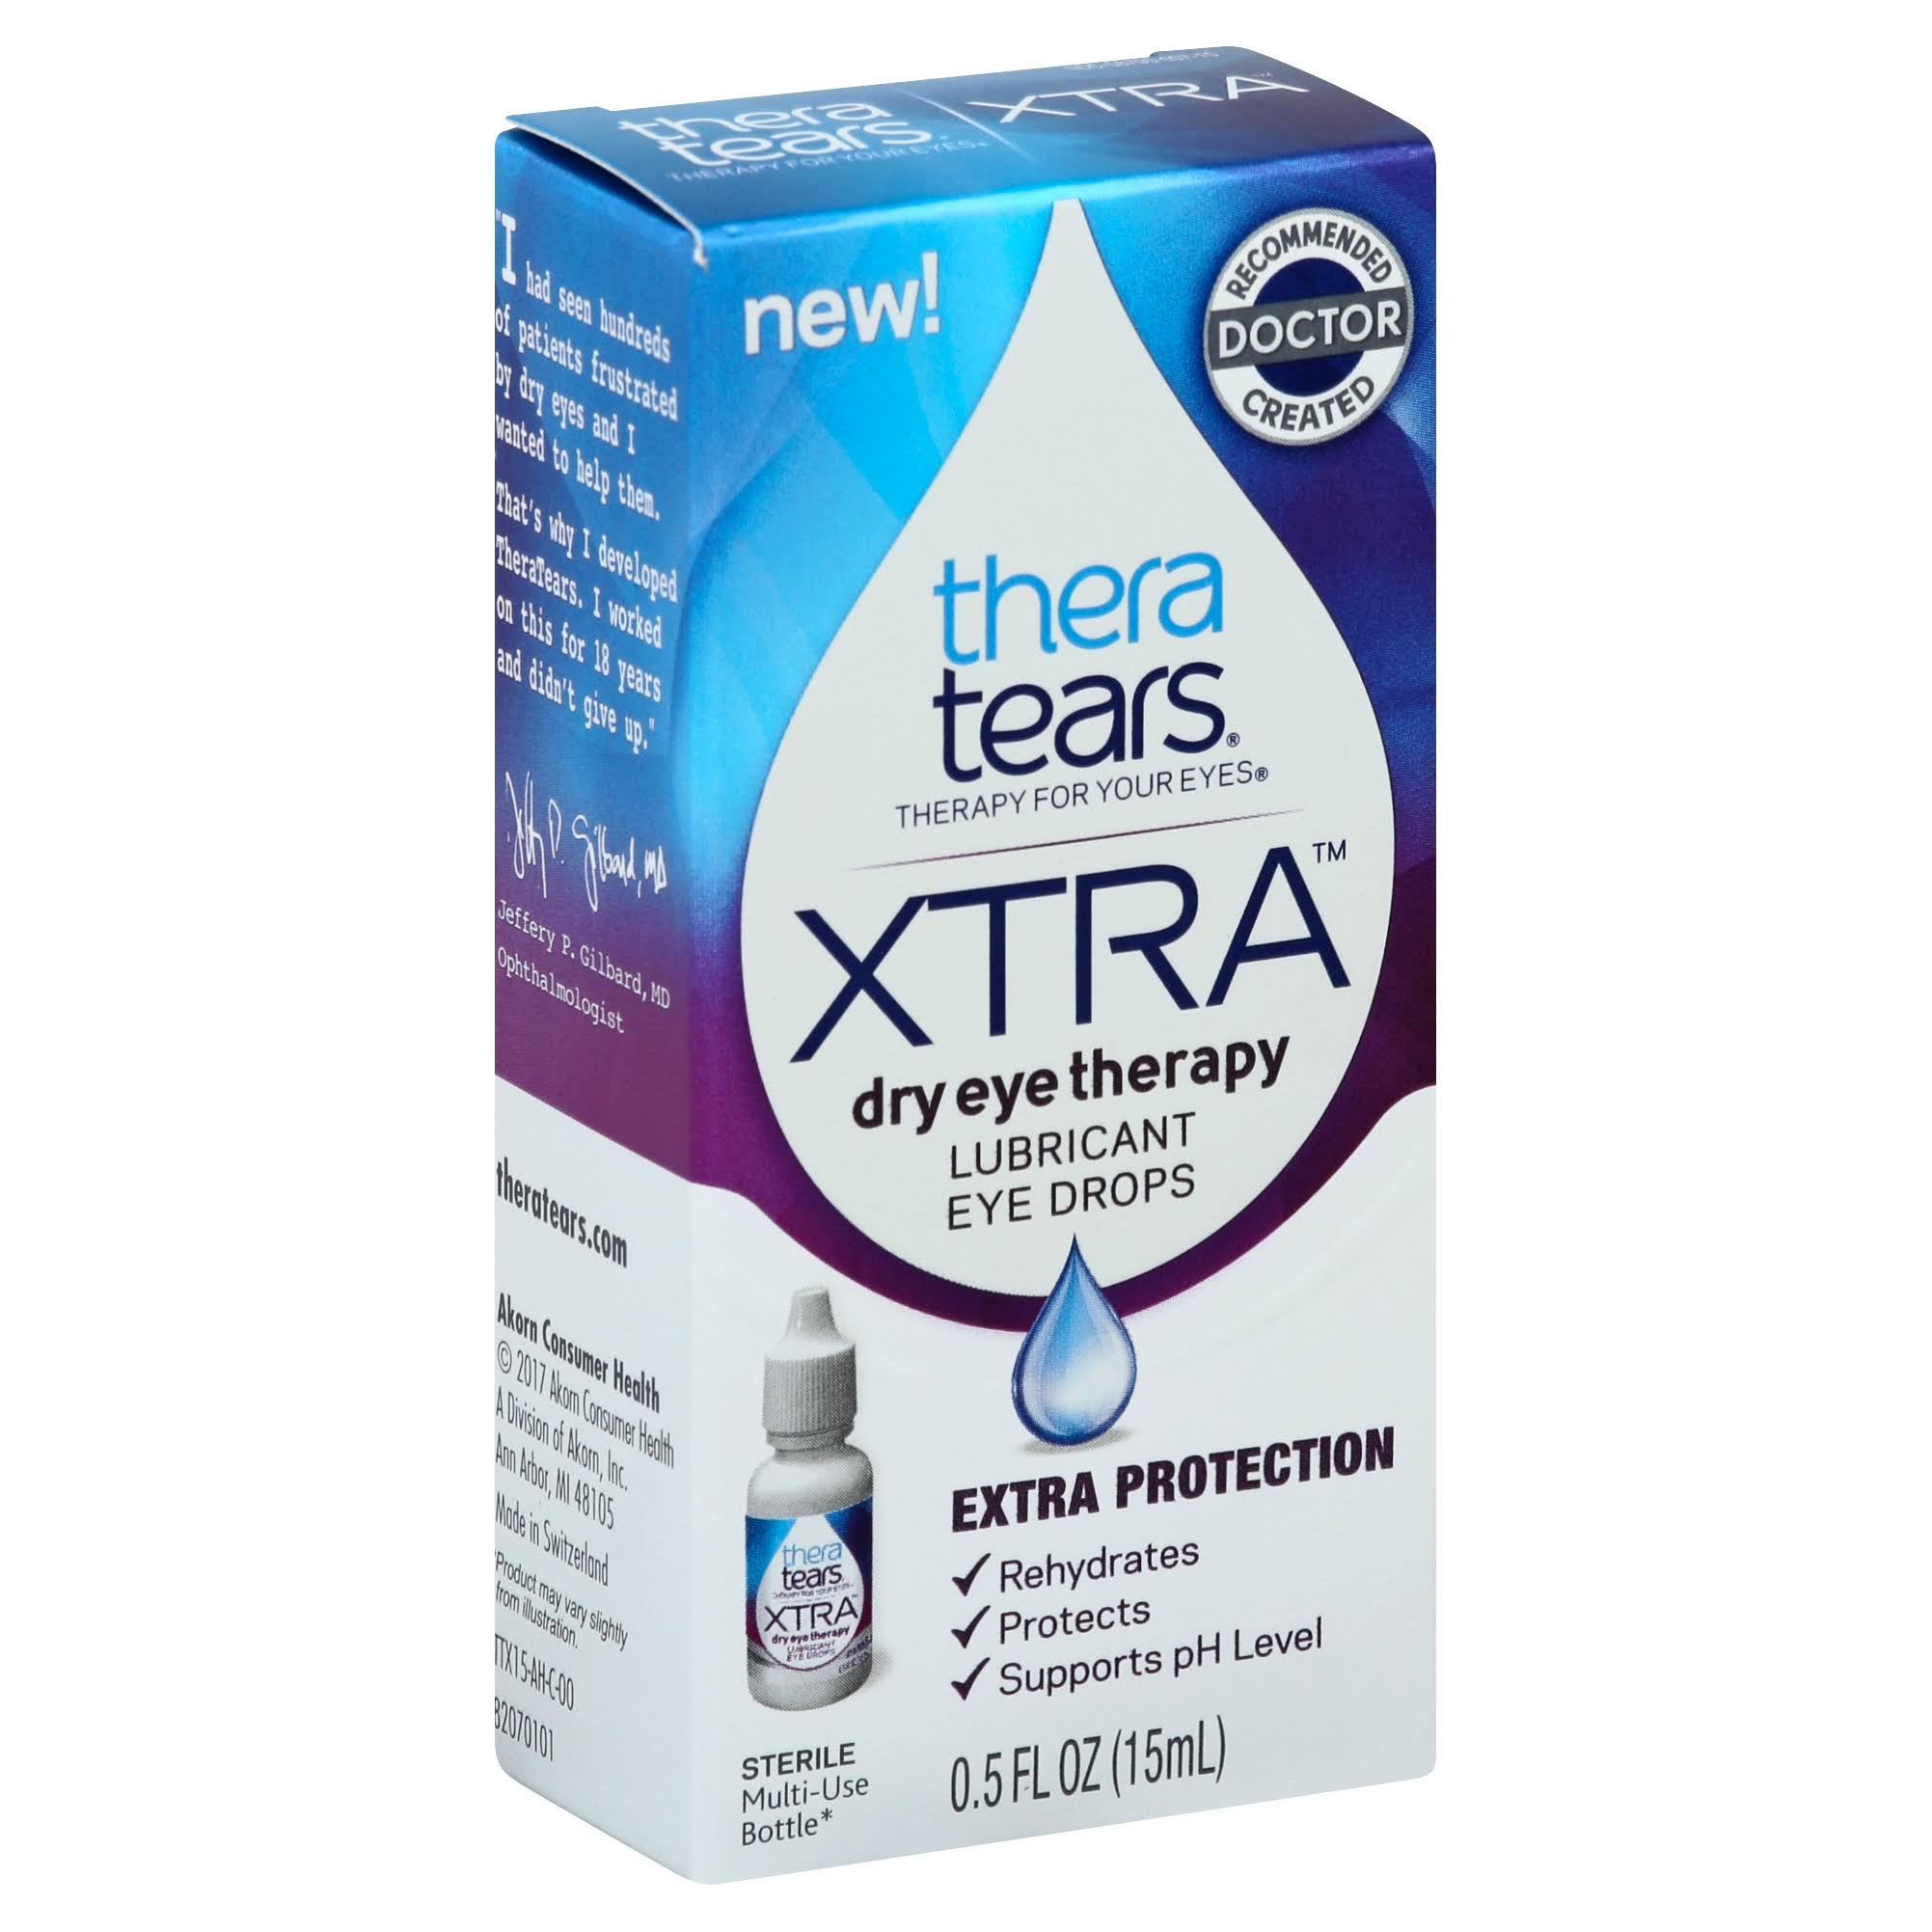 Thera Tears Eye Drops, Lubricant, Xtra - 0.5 fl oz